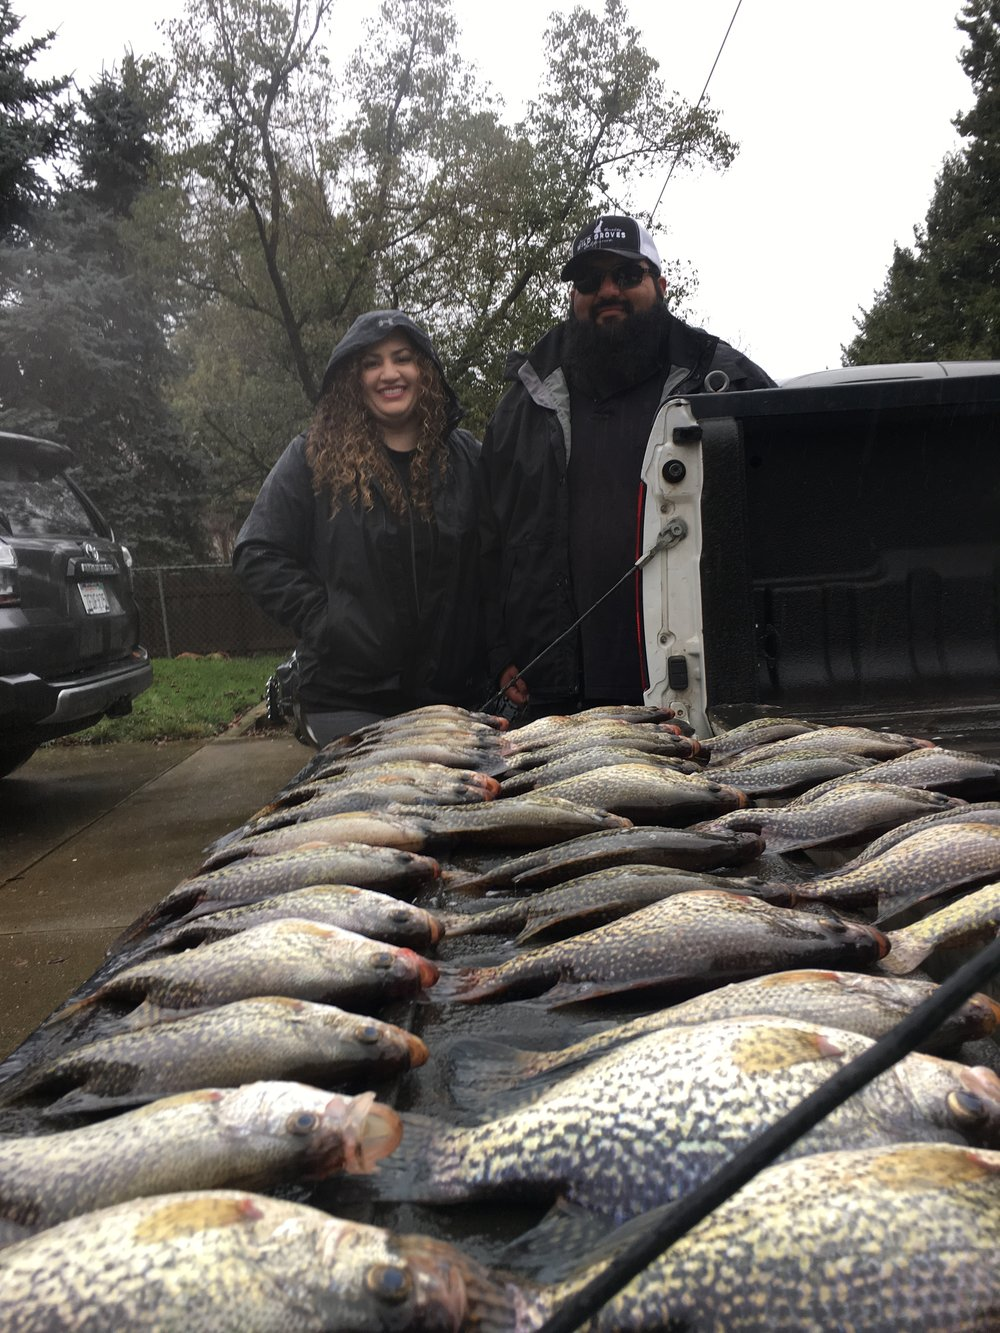 Oscar Nerey and his wife Lauren Nerey show off their catch of Clearlake Crappie on January 6, 2017 while fishing with local fishing guide John Pear (J.P. Guide Service  tel:707-536-3984 ).  Mike's Fishing Guide & Charter Service For Sacramento River Fishing targeting King Salmon, Sockeye Salmon, Striped Bass, Sturgeon, Shad And Trout the best Sacramento River Fishing guide and Sacramento River Charter on Sac River